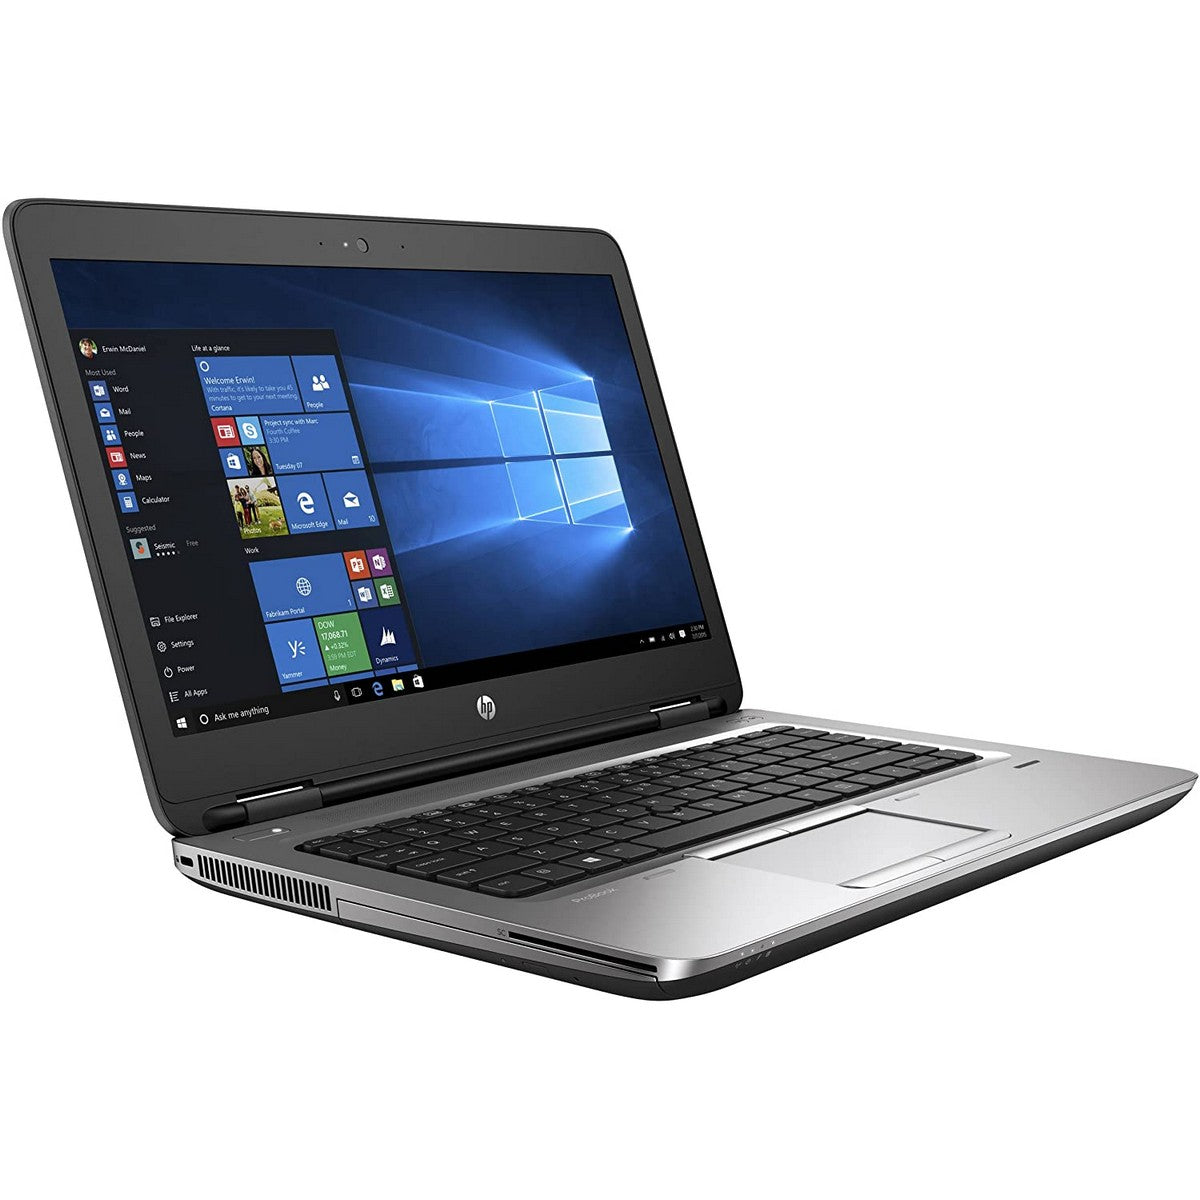 Used HP ProBook 640G2 Laptop 14'' HD+, Intel Core i5 i5-6300U, 8GB RAM, Intel GPU, 500GB HDD, English Keyboard